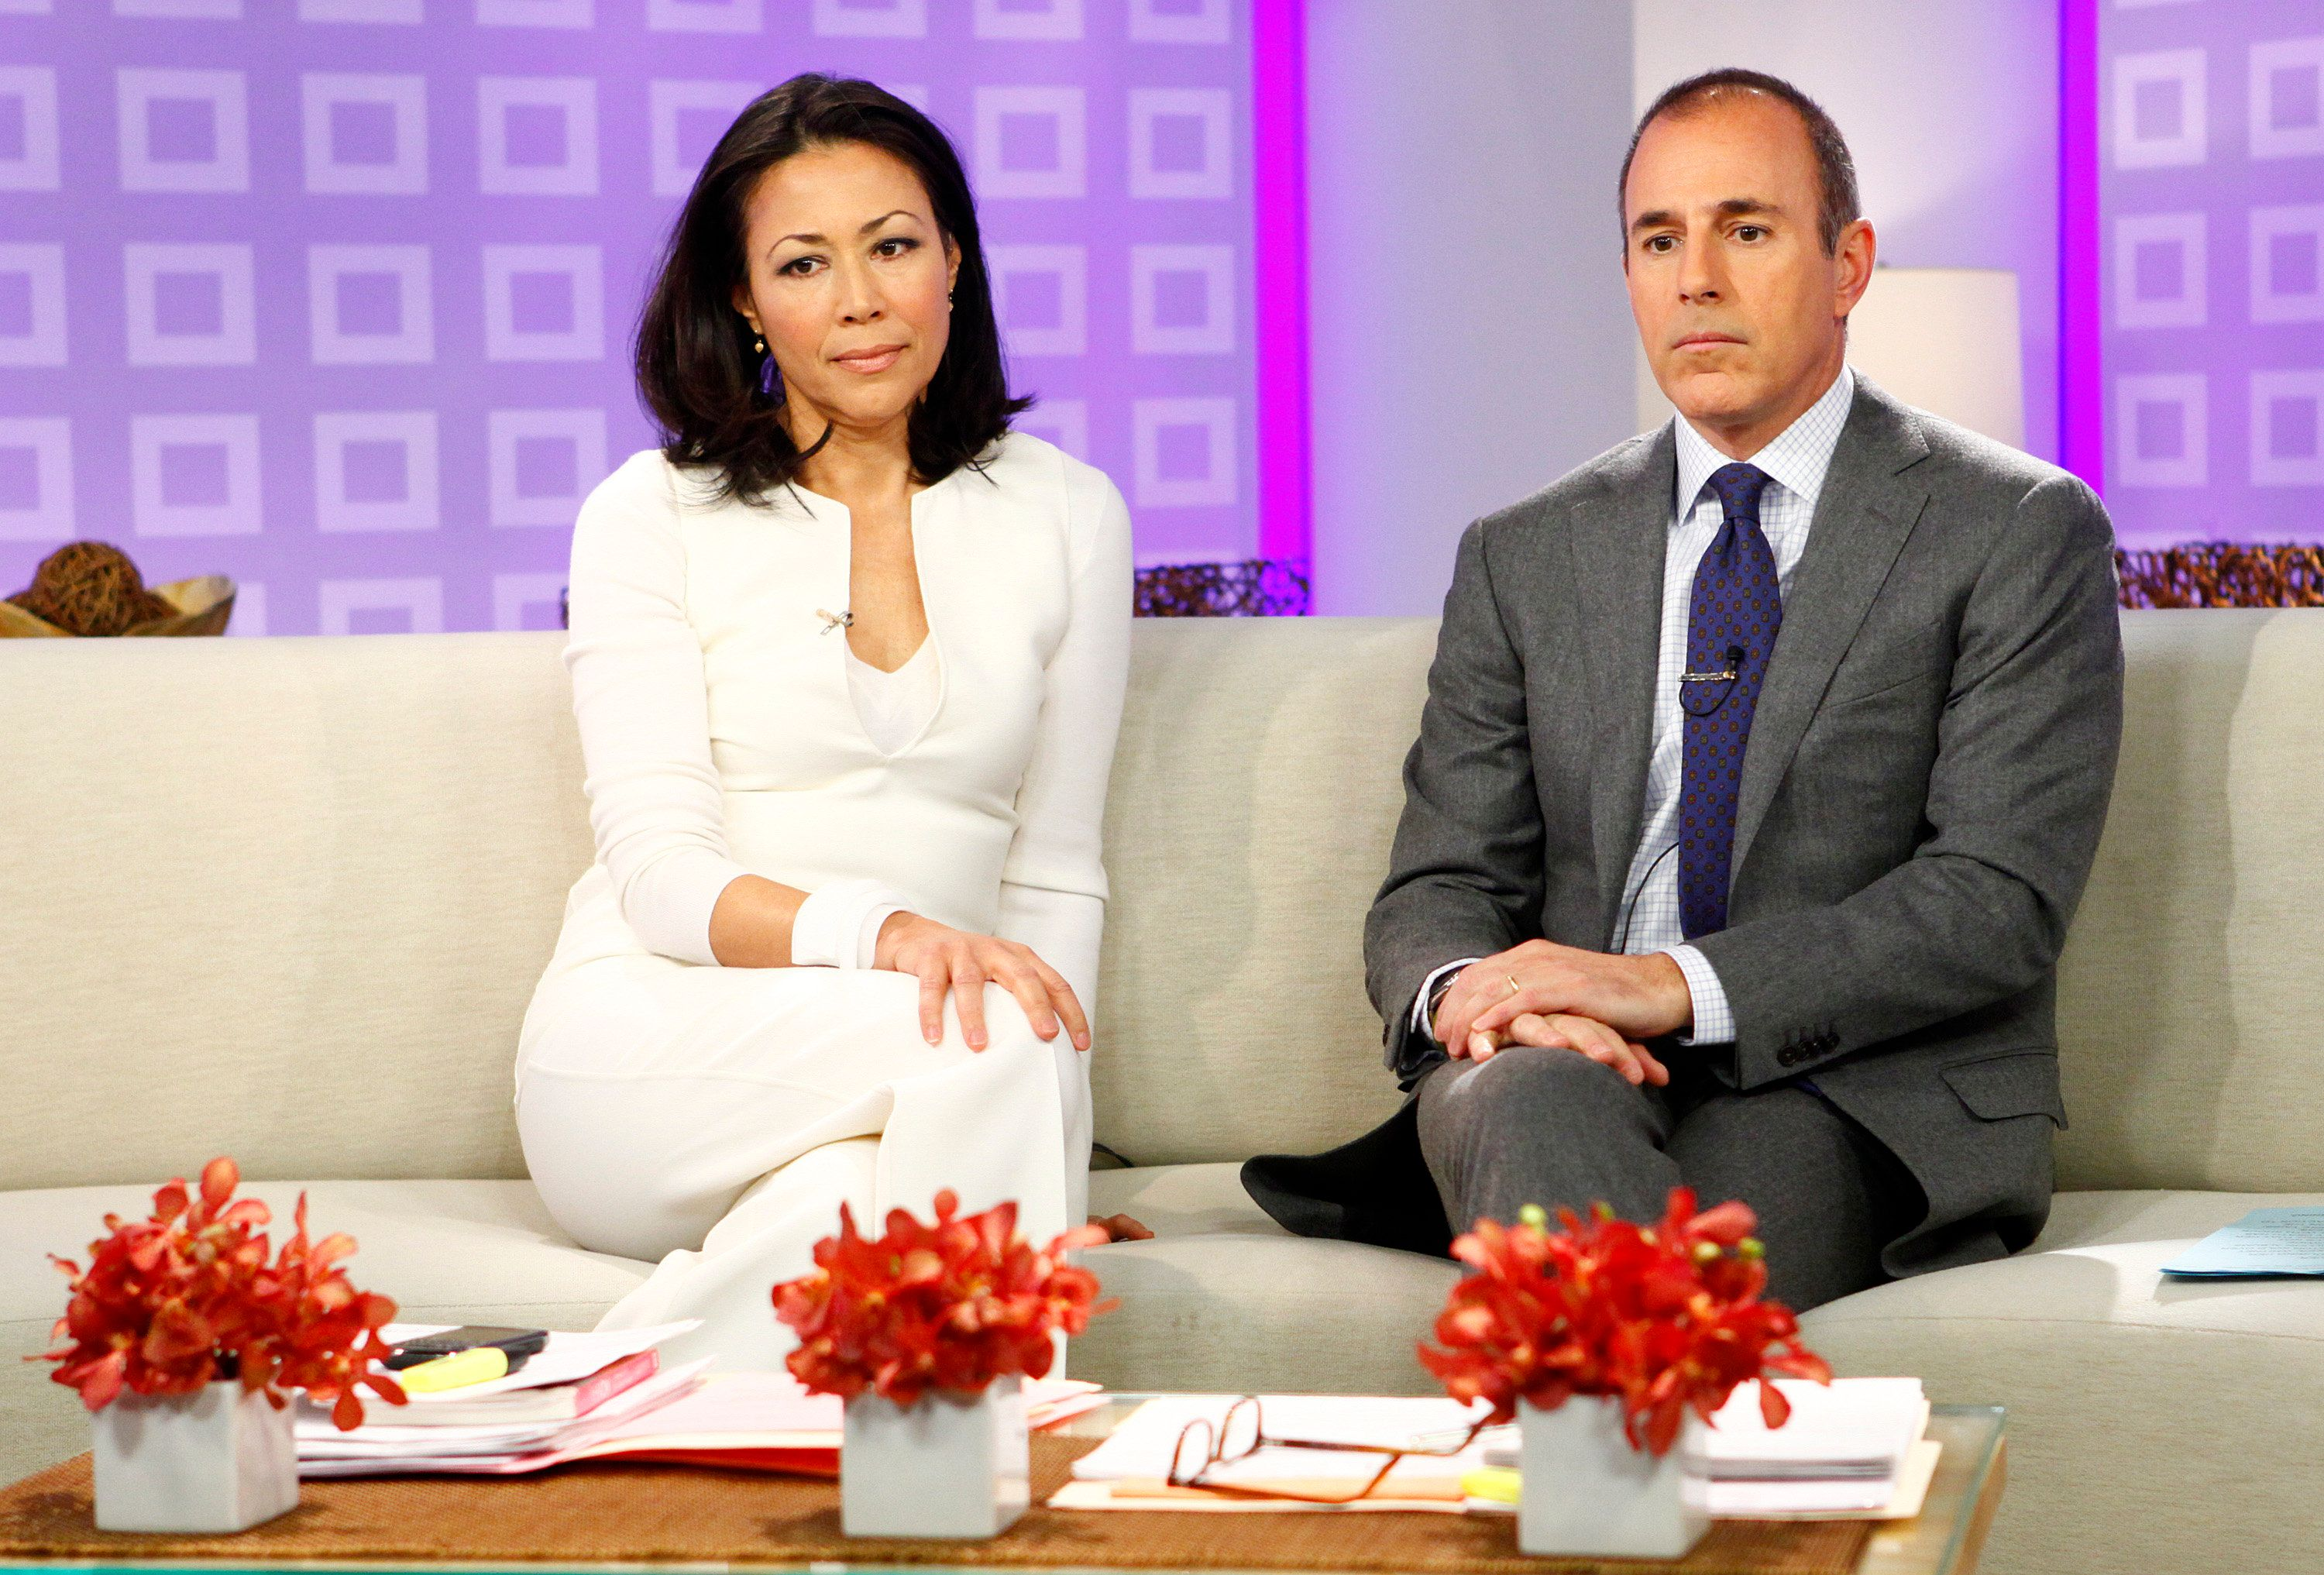 TODAY -- Pictured: (l-r) Ann Curry and Matt Lauer appear on NBC News' 'Today' show  (Photo by Peter Kramer/NBC/NBCU Photo Bank via Getty Images)